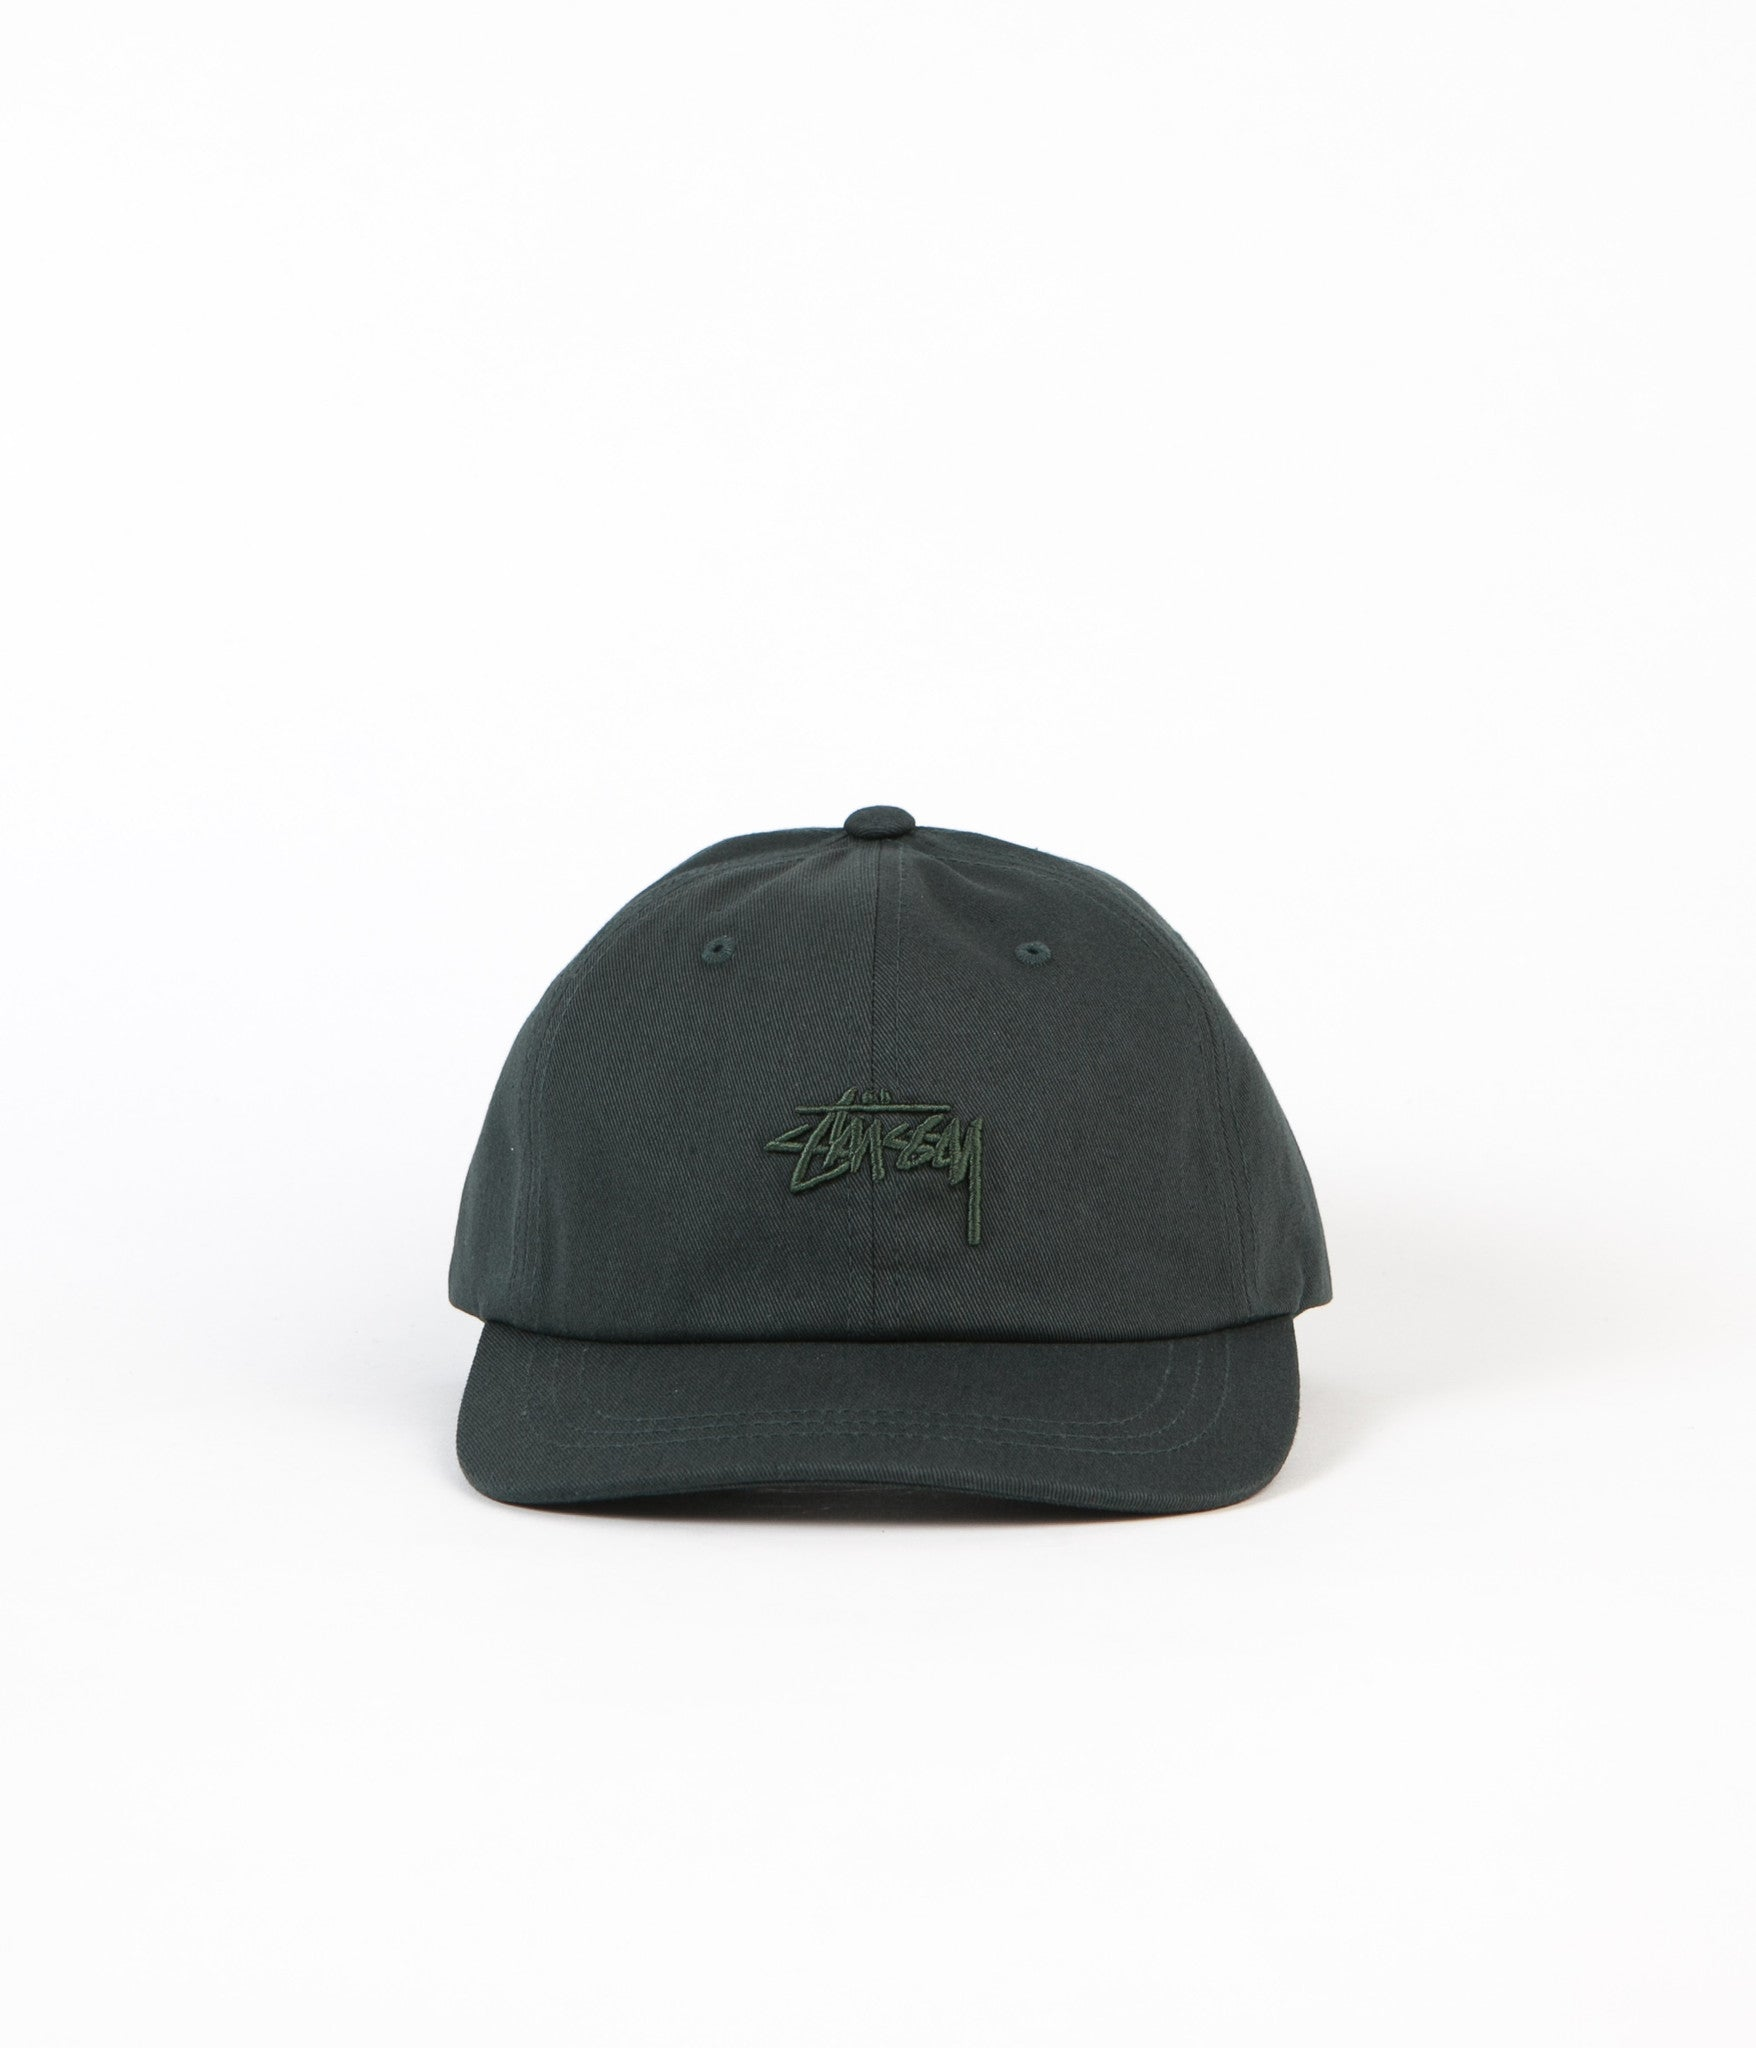 ... Stussy Tonal Stock Low Cap - Green ... 5129fb887c5